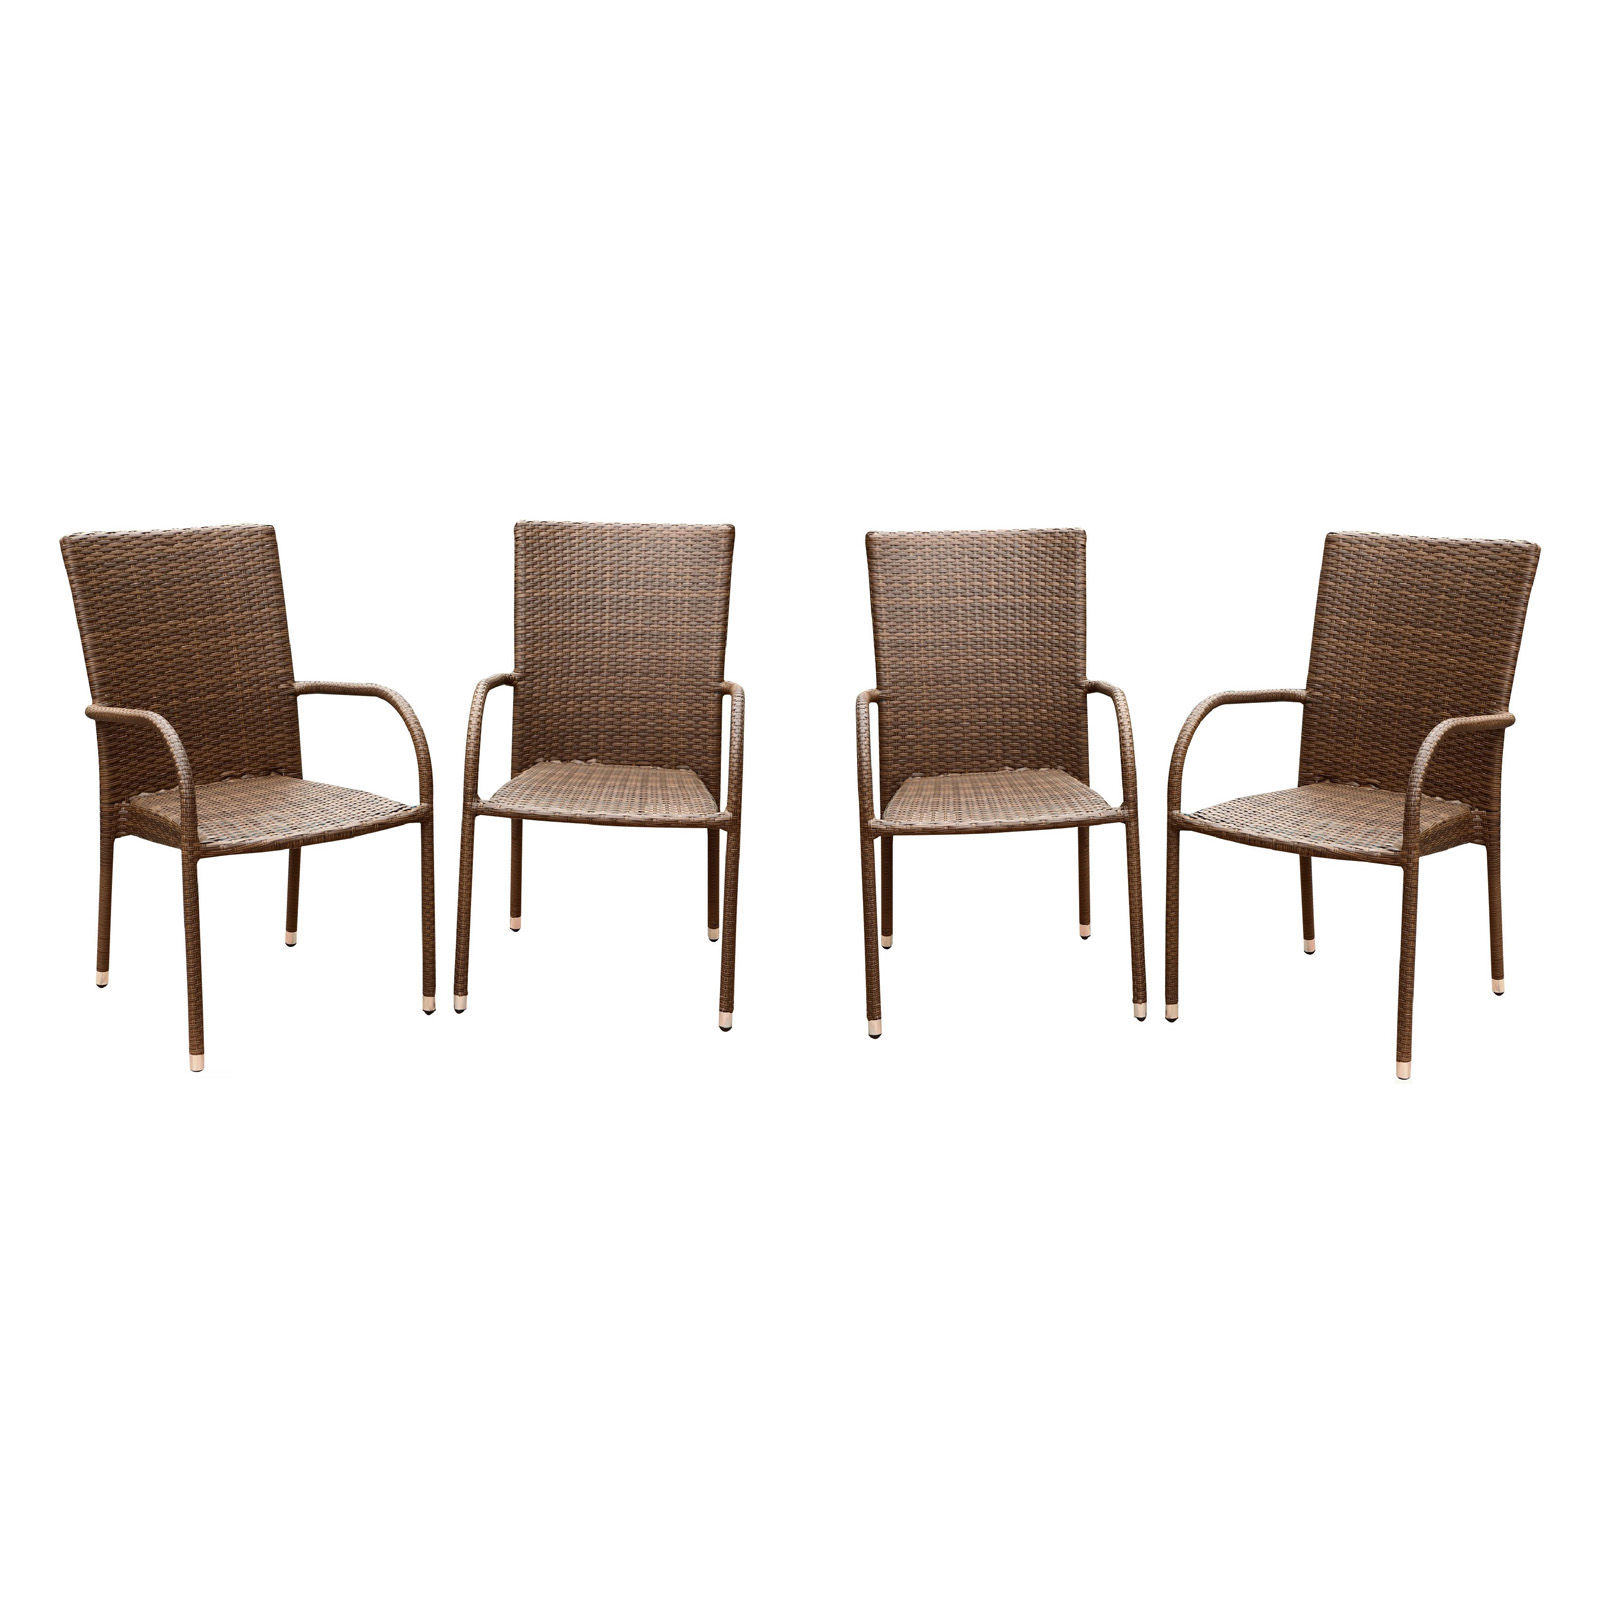 Abbyson Palermo Dining Arm Chair Set of 4